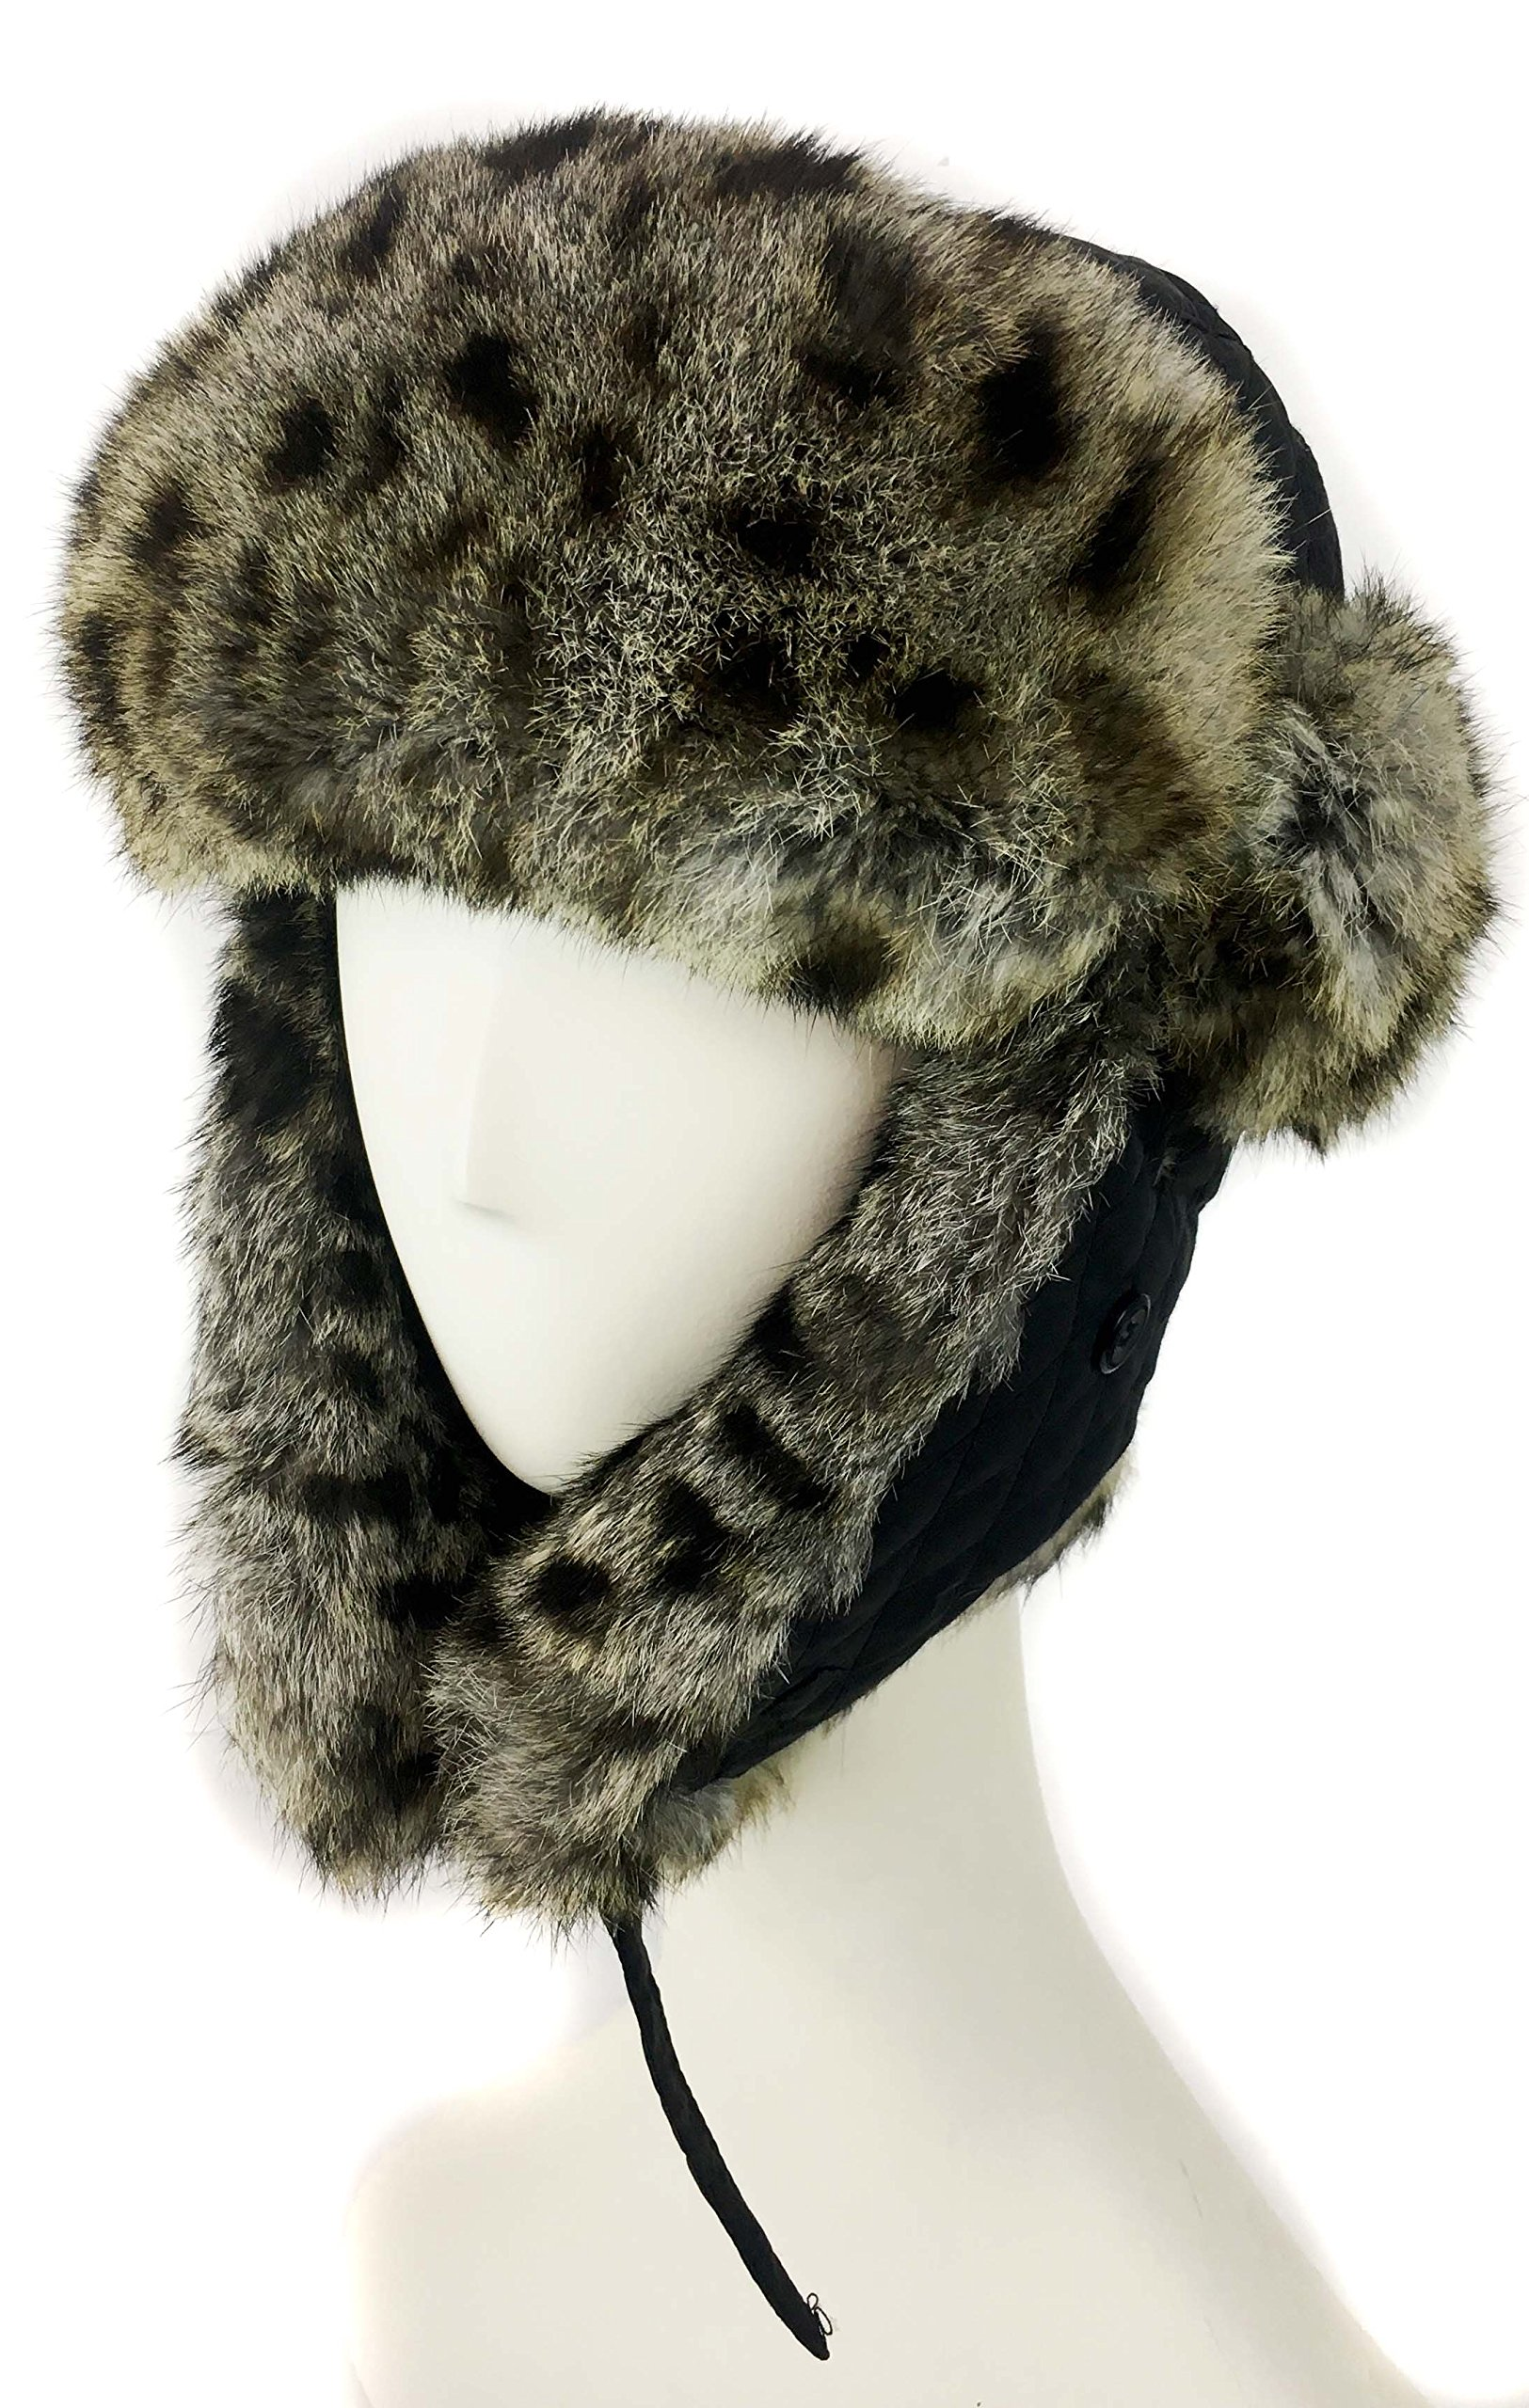 surell Trapper Aviator Hat with Rabbit Fur Trim - Warm Bomber Trooper Hat - Perfect Winter Luxury Gift (Leopard)